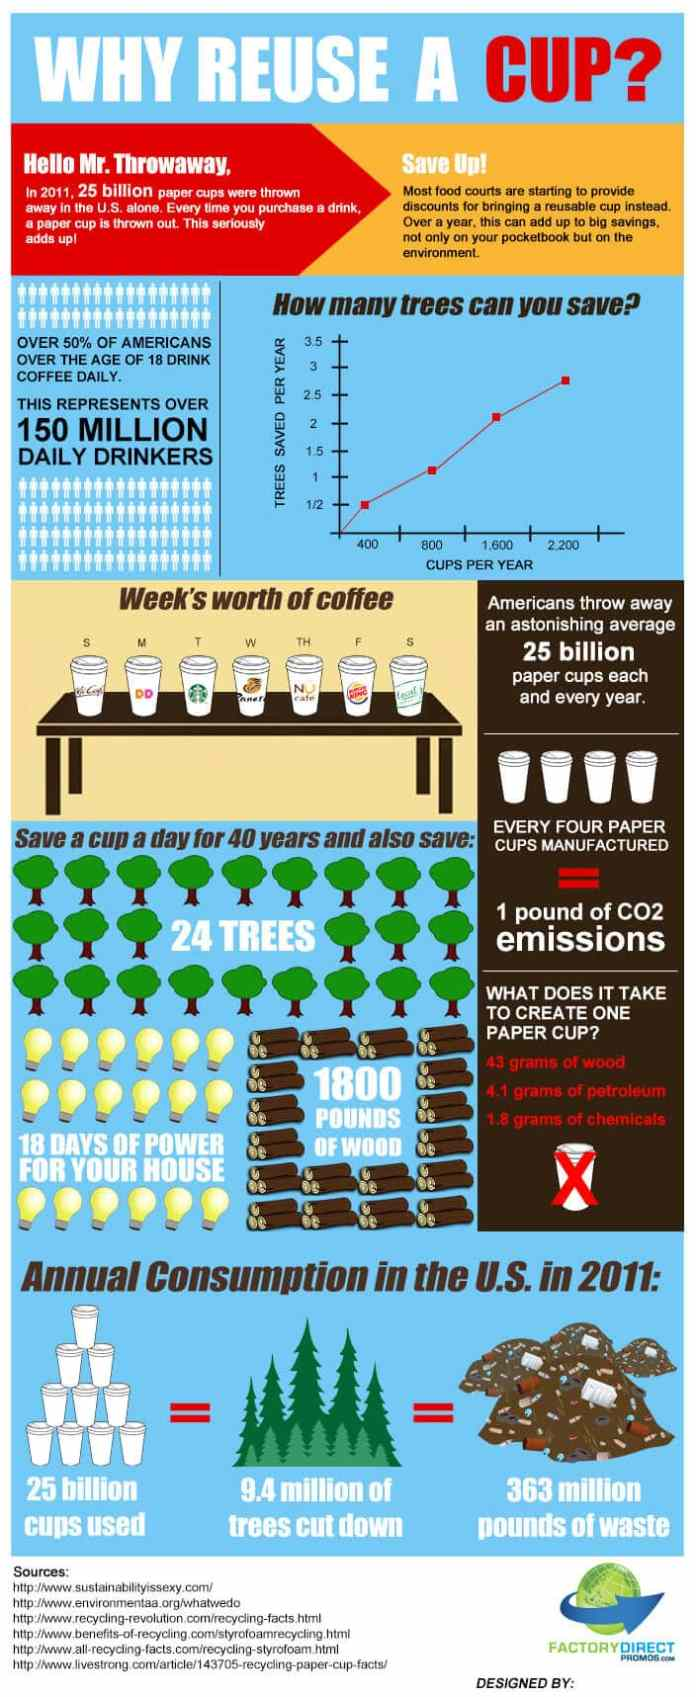 Why Reuse a Cup infographic